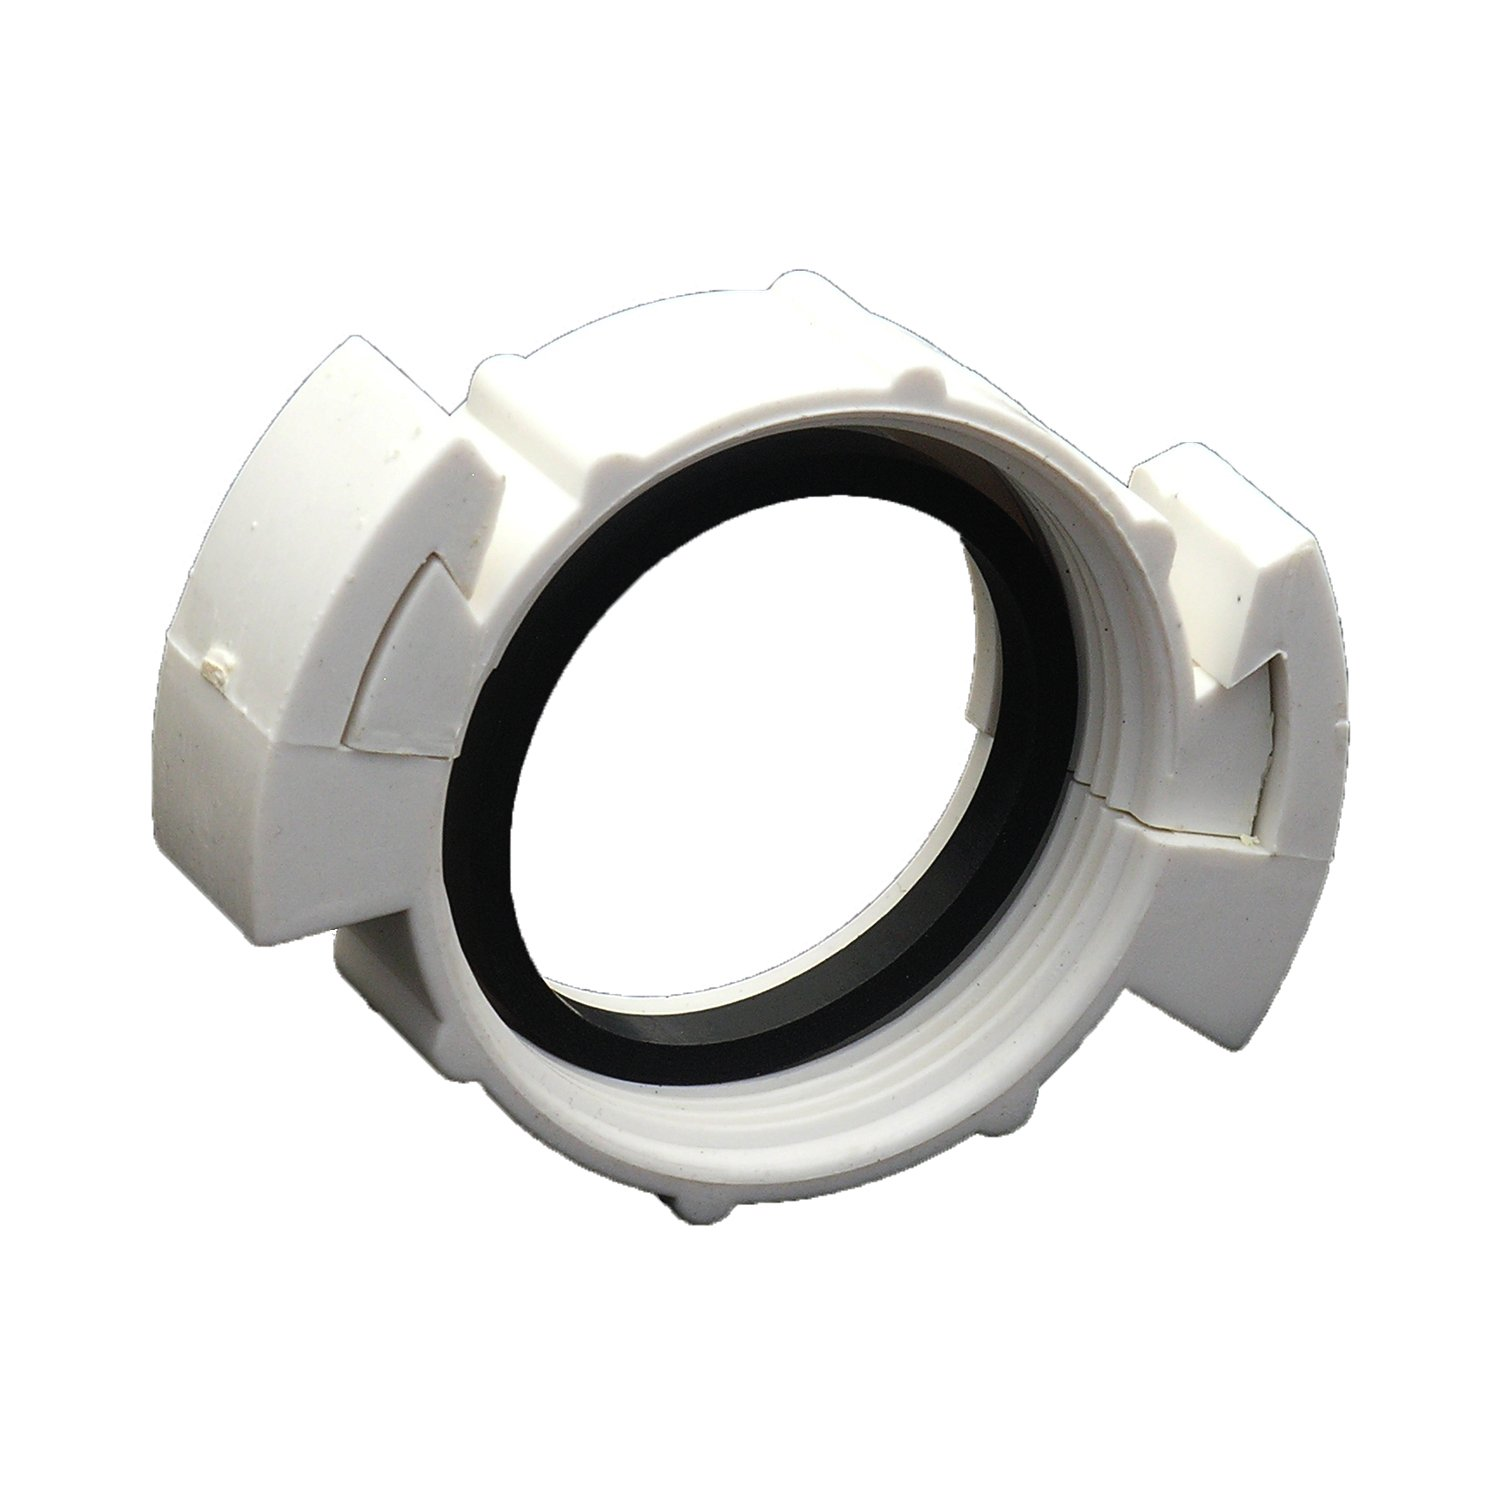 LASCO 03-1883 Two Piece Slip Joint Nut, 1-1/2'', White